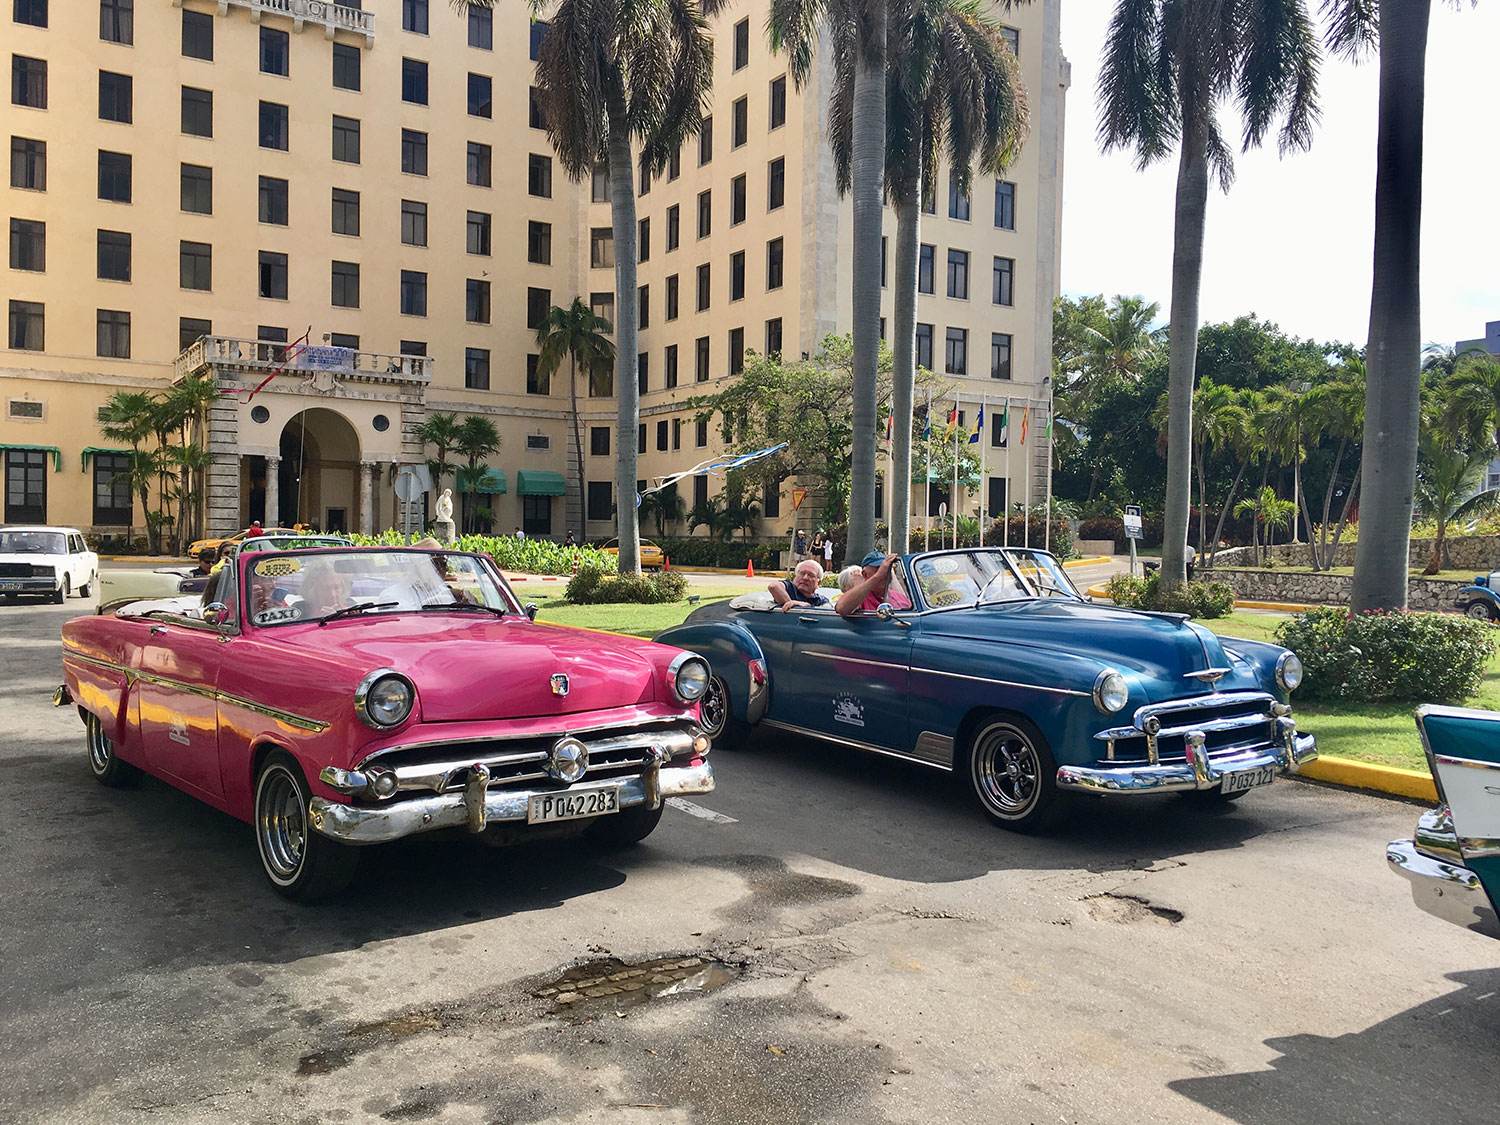 Vintage cars outside the Nacional. No need to pre-book, just arrive.